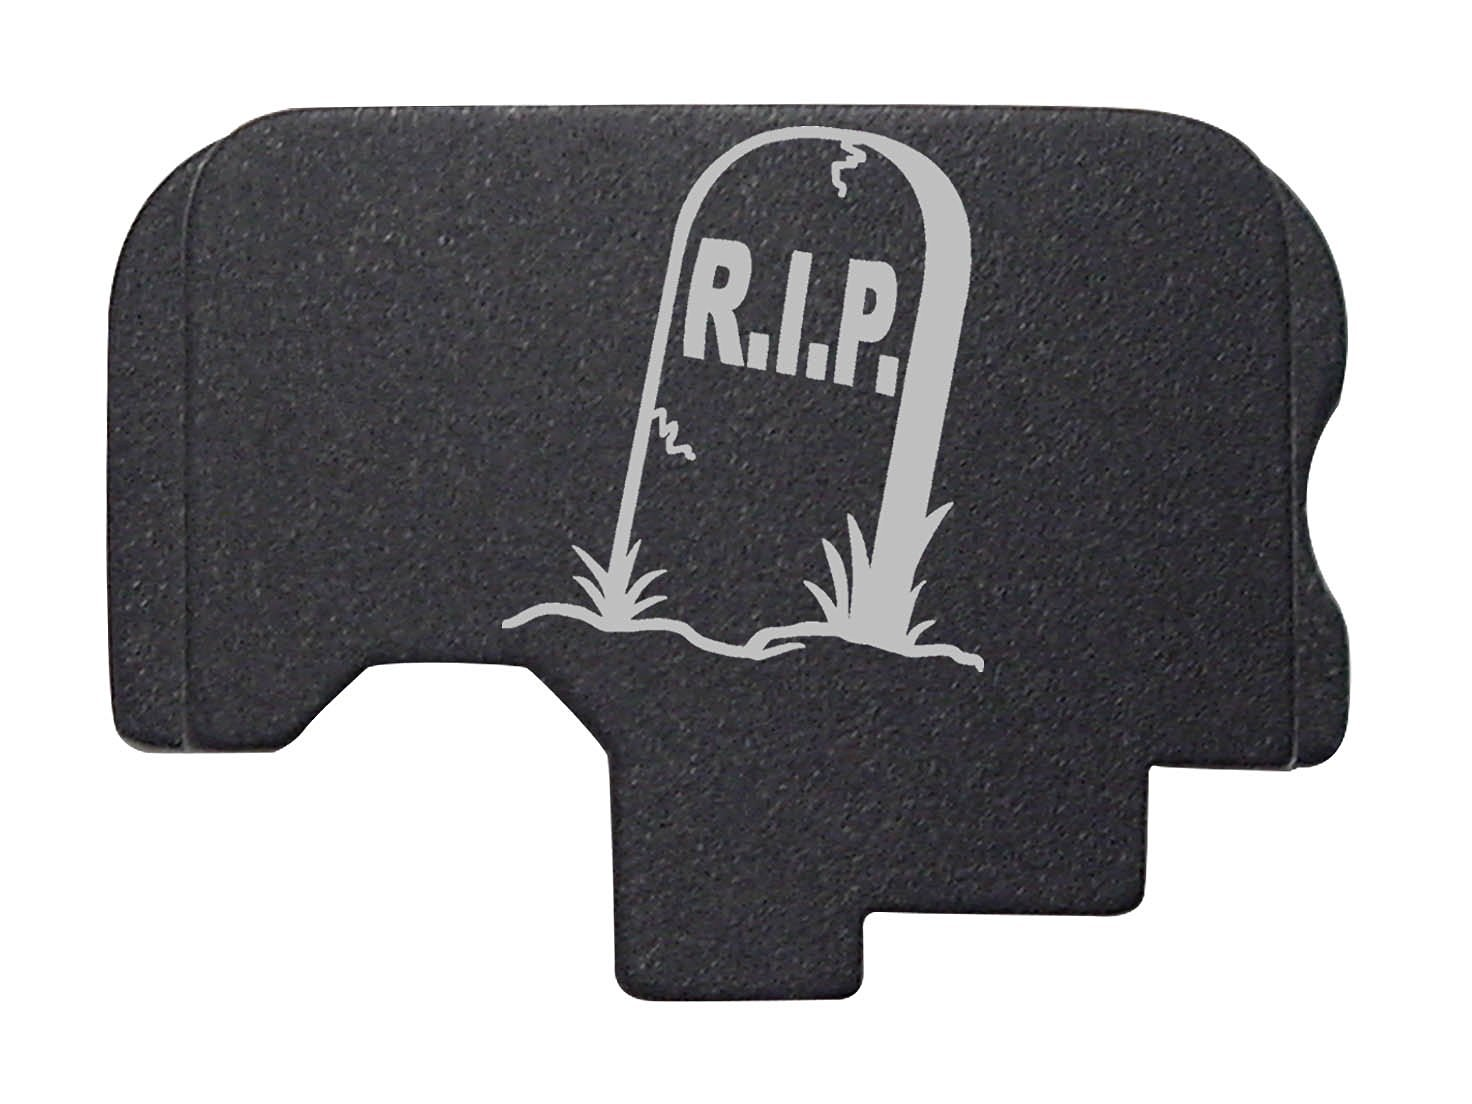 R.I.P. Tombstone Headstone Engraved Black Rear Slide Cover Plate For Kahr Arms .45 ACP Models: CT45 CW45 CM45 TP45 P45 PM45